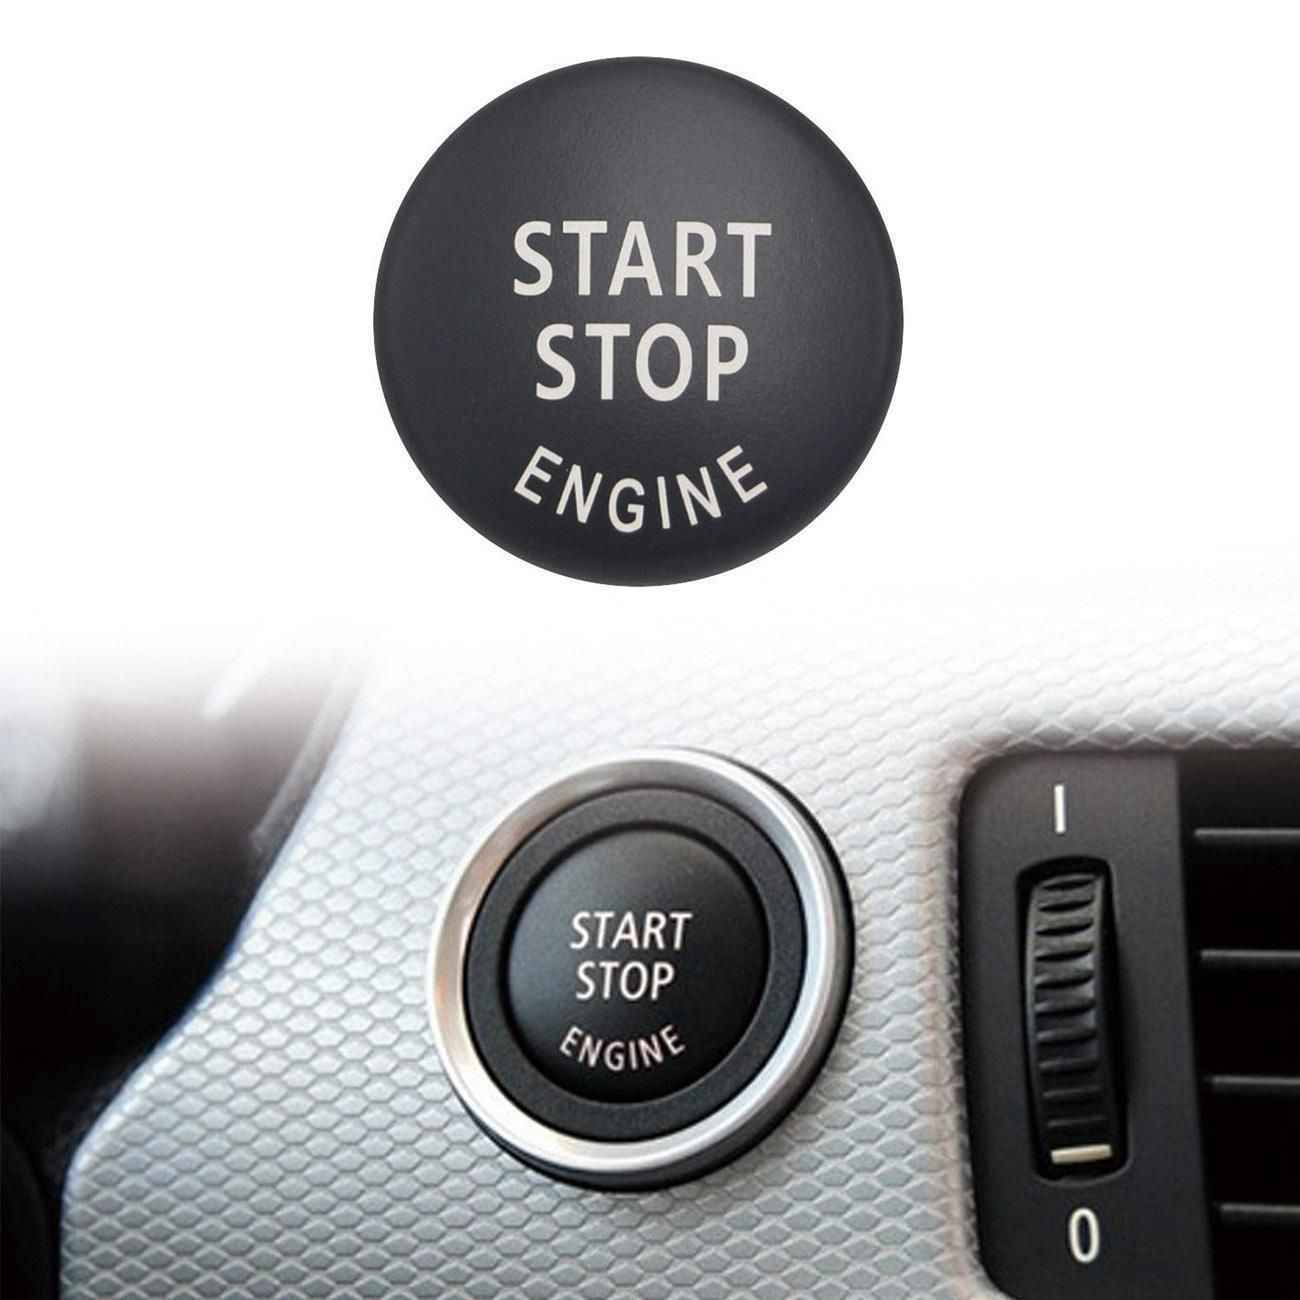 hight resolution of start stop engine button push button ignition switch cover replacement for bmw x1 x3 x5 x6